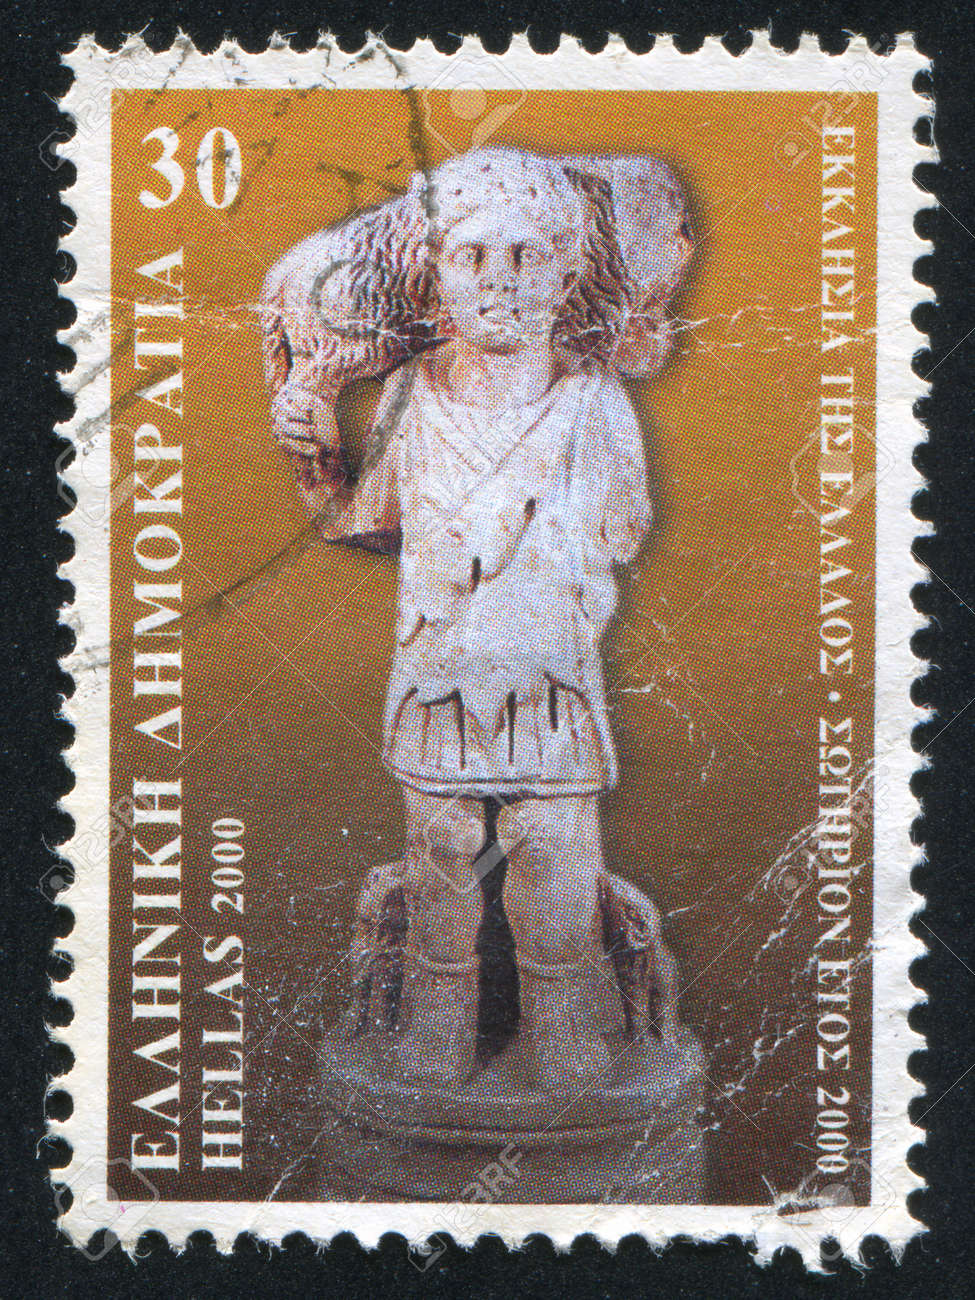 GREECE - CIRCA 2000: stamp printed by Greece, shows Sculpture of the Good Shepherd, circa 2000 Stock Photo - 14444198